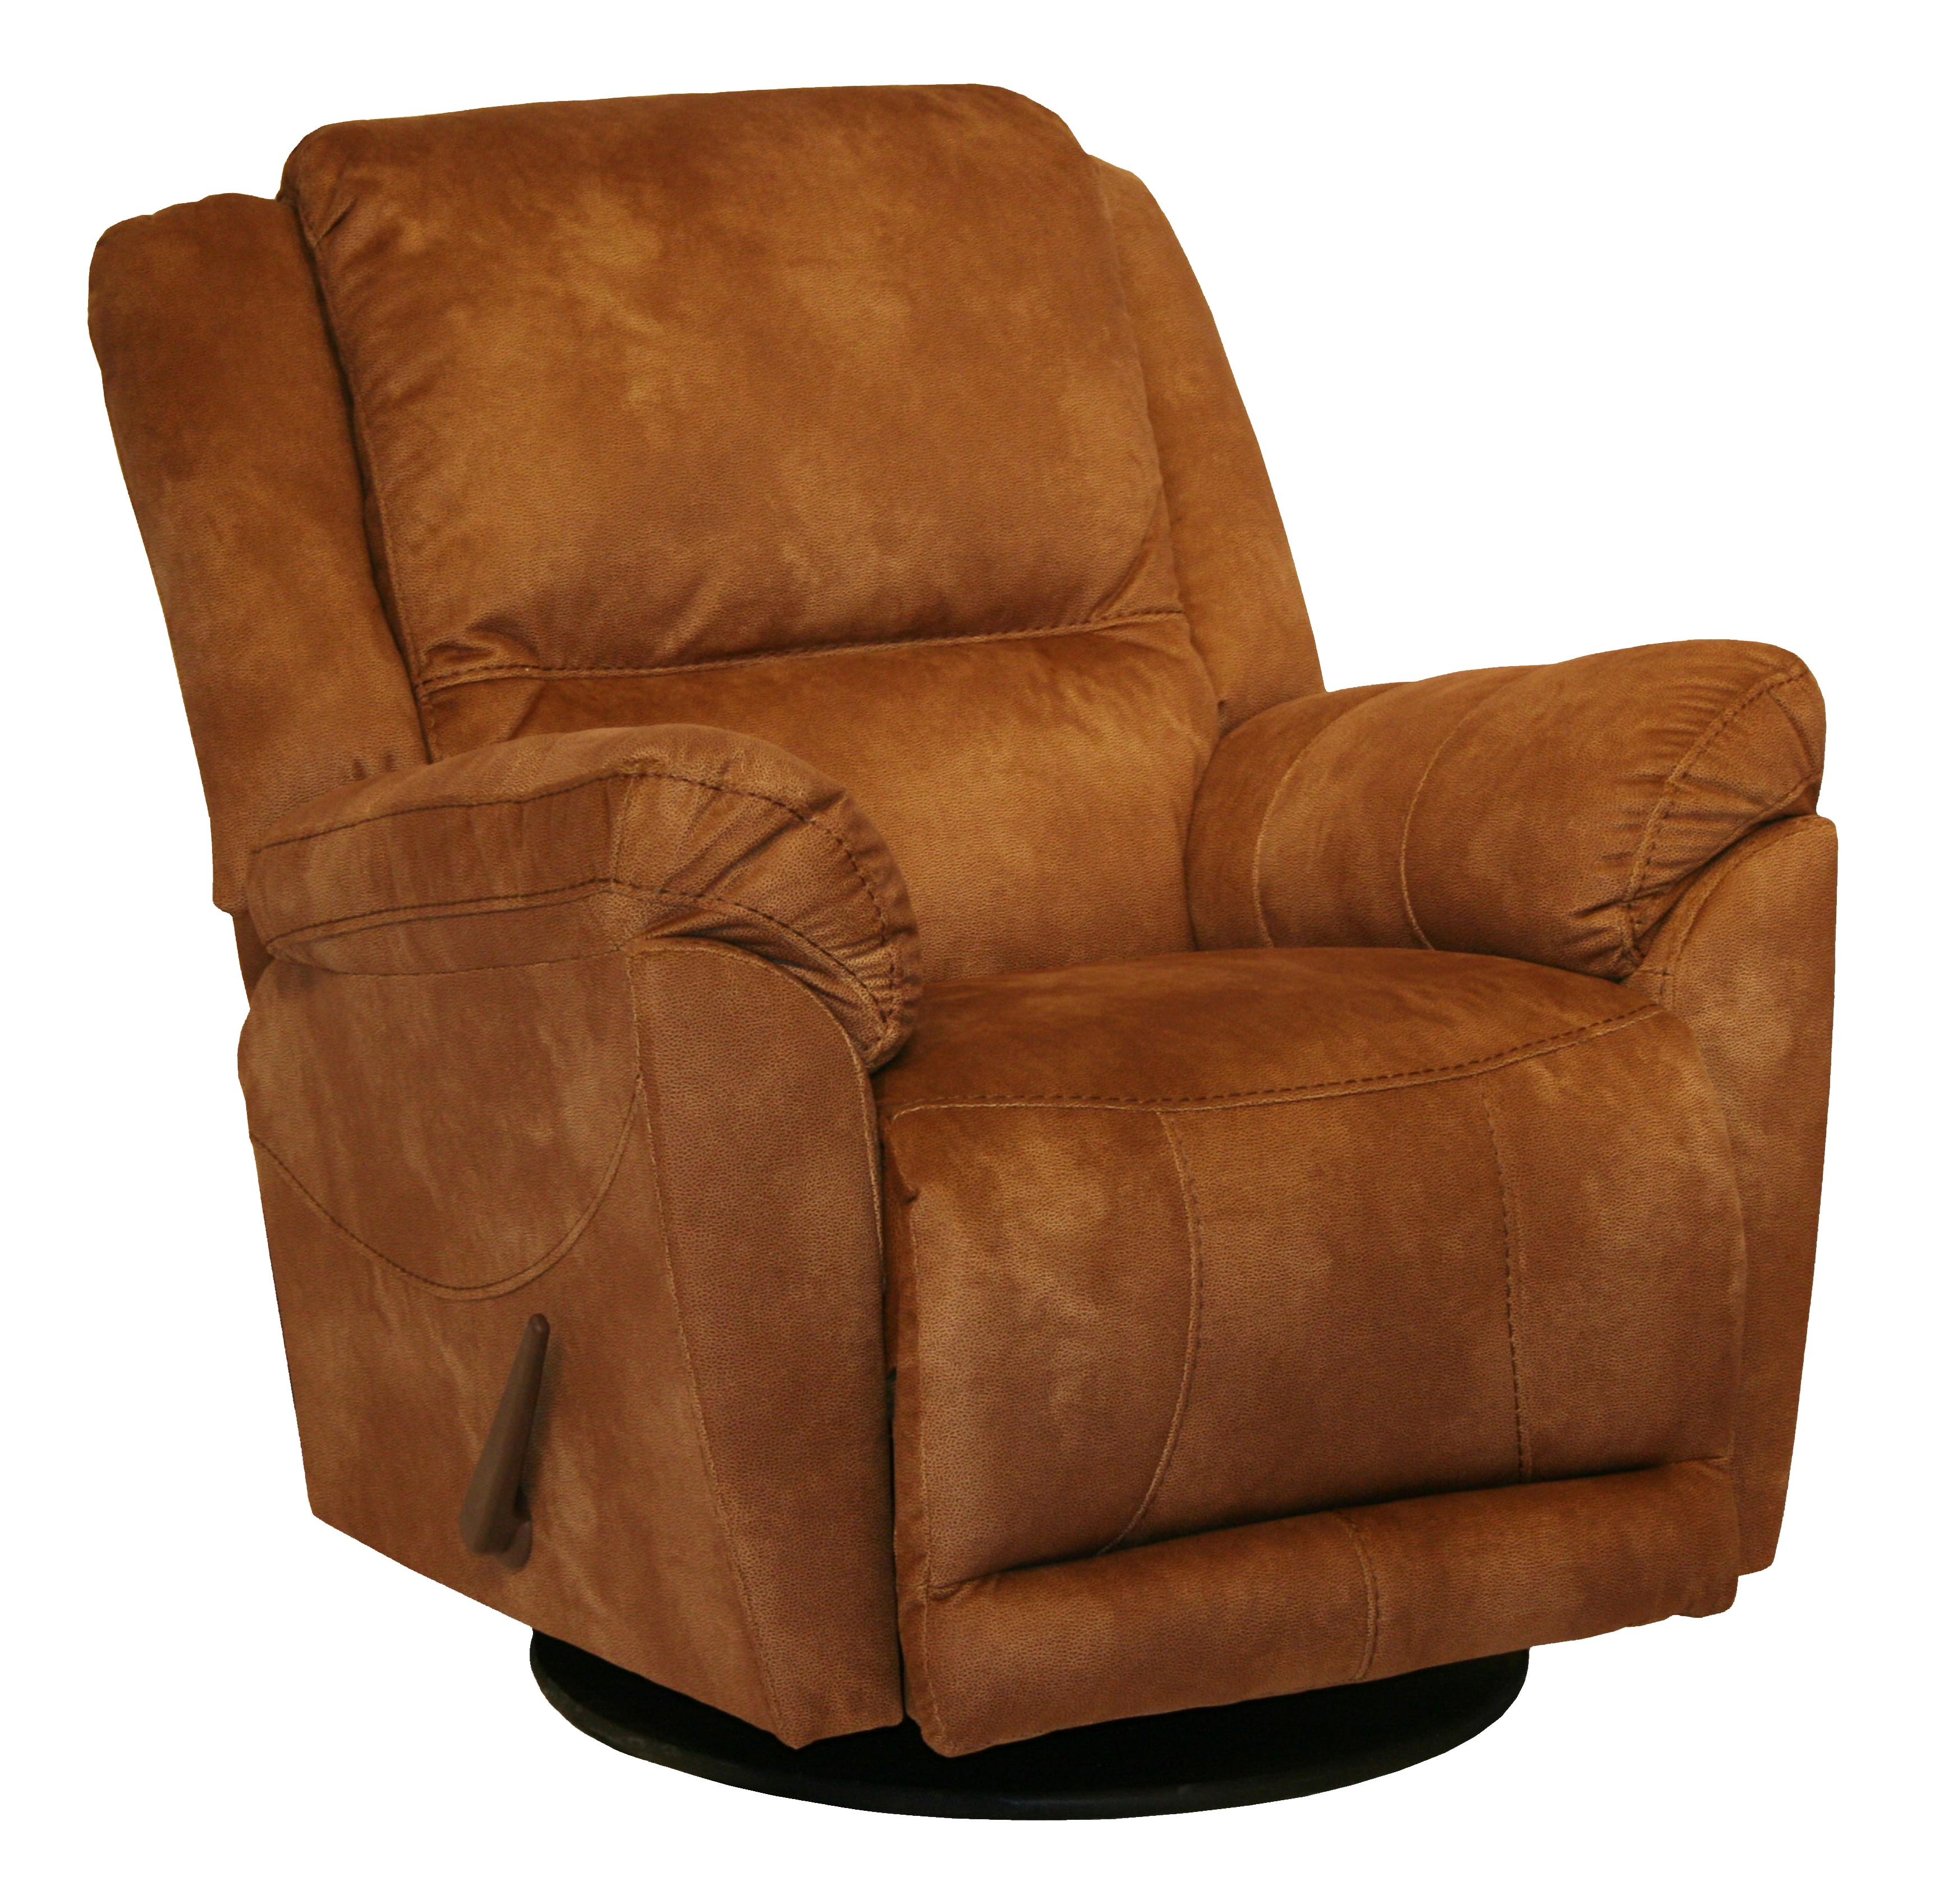 Motion Chairs And Recliners Maverick Swivel Glider